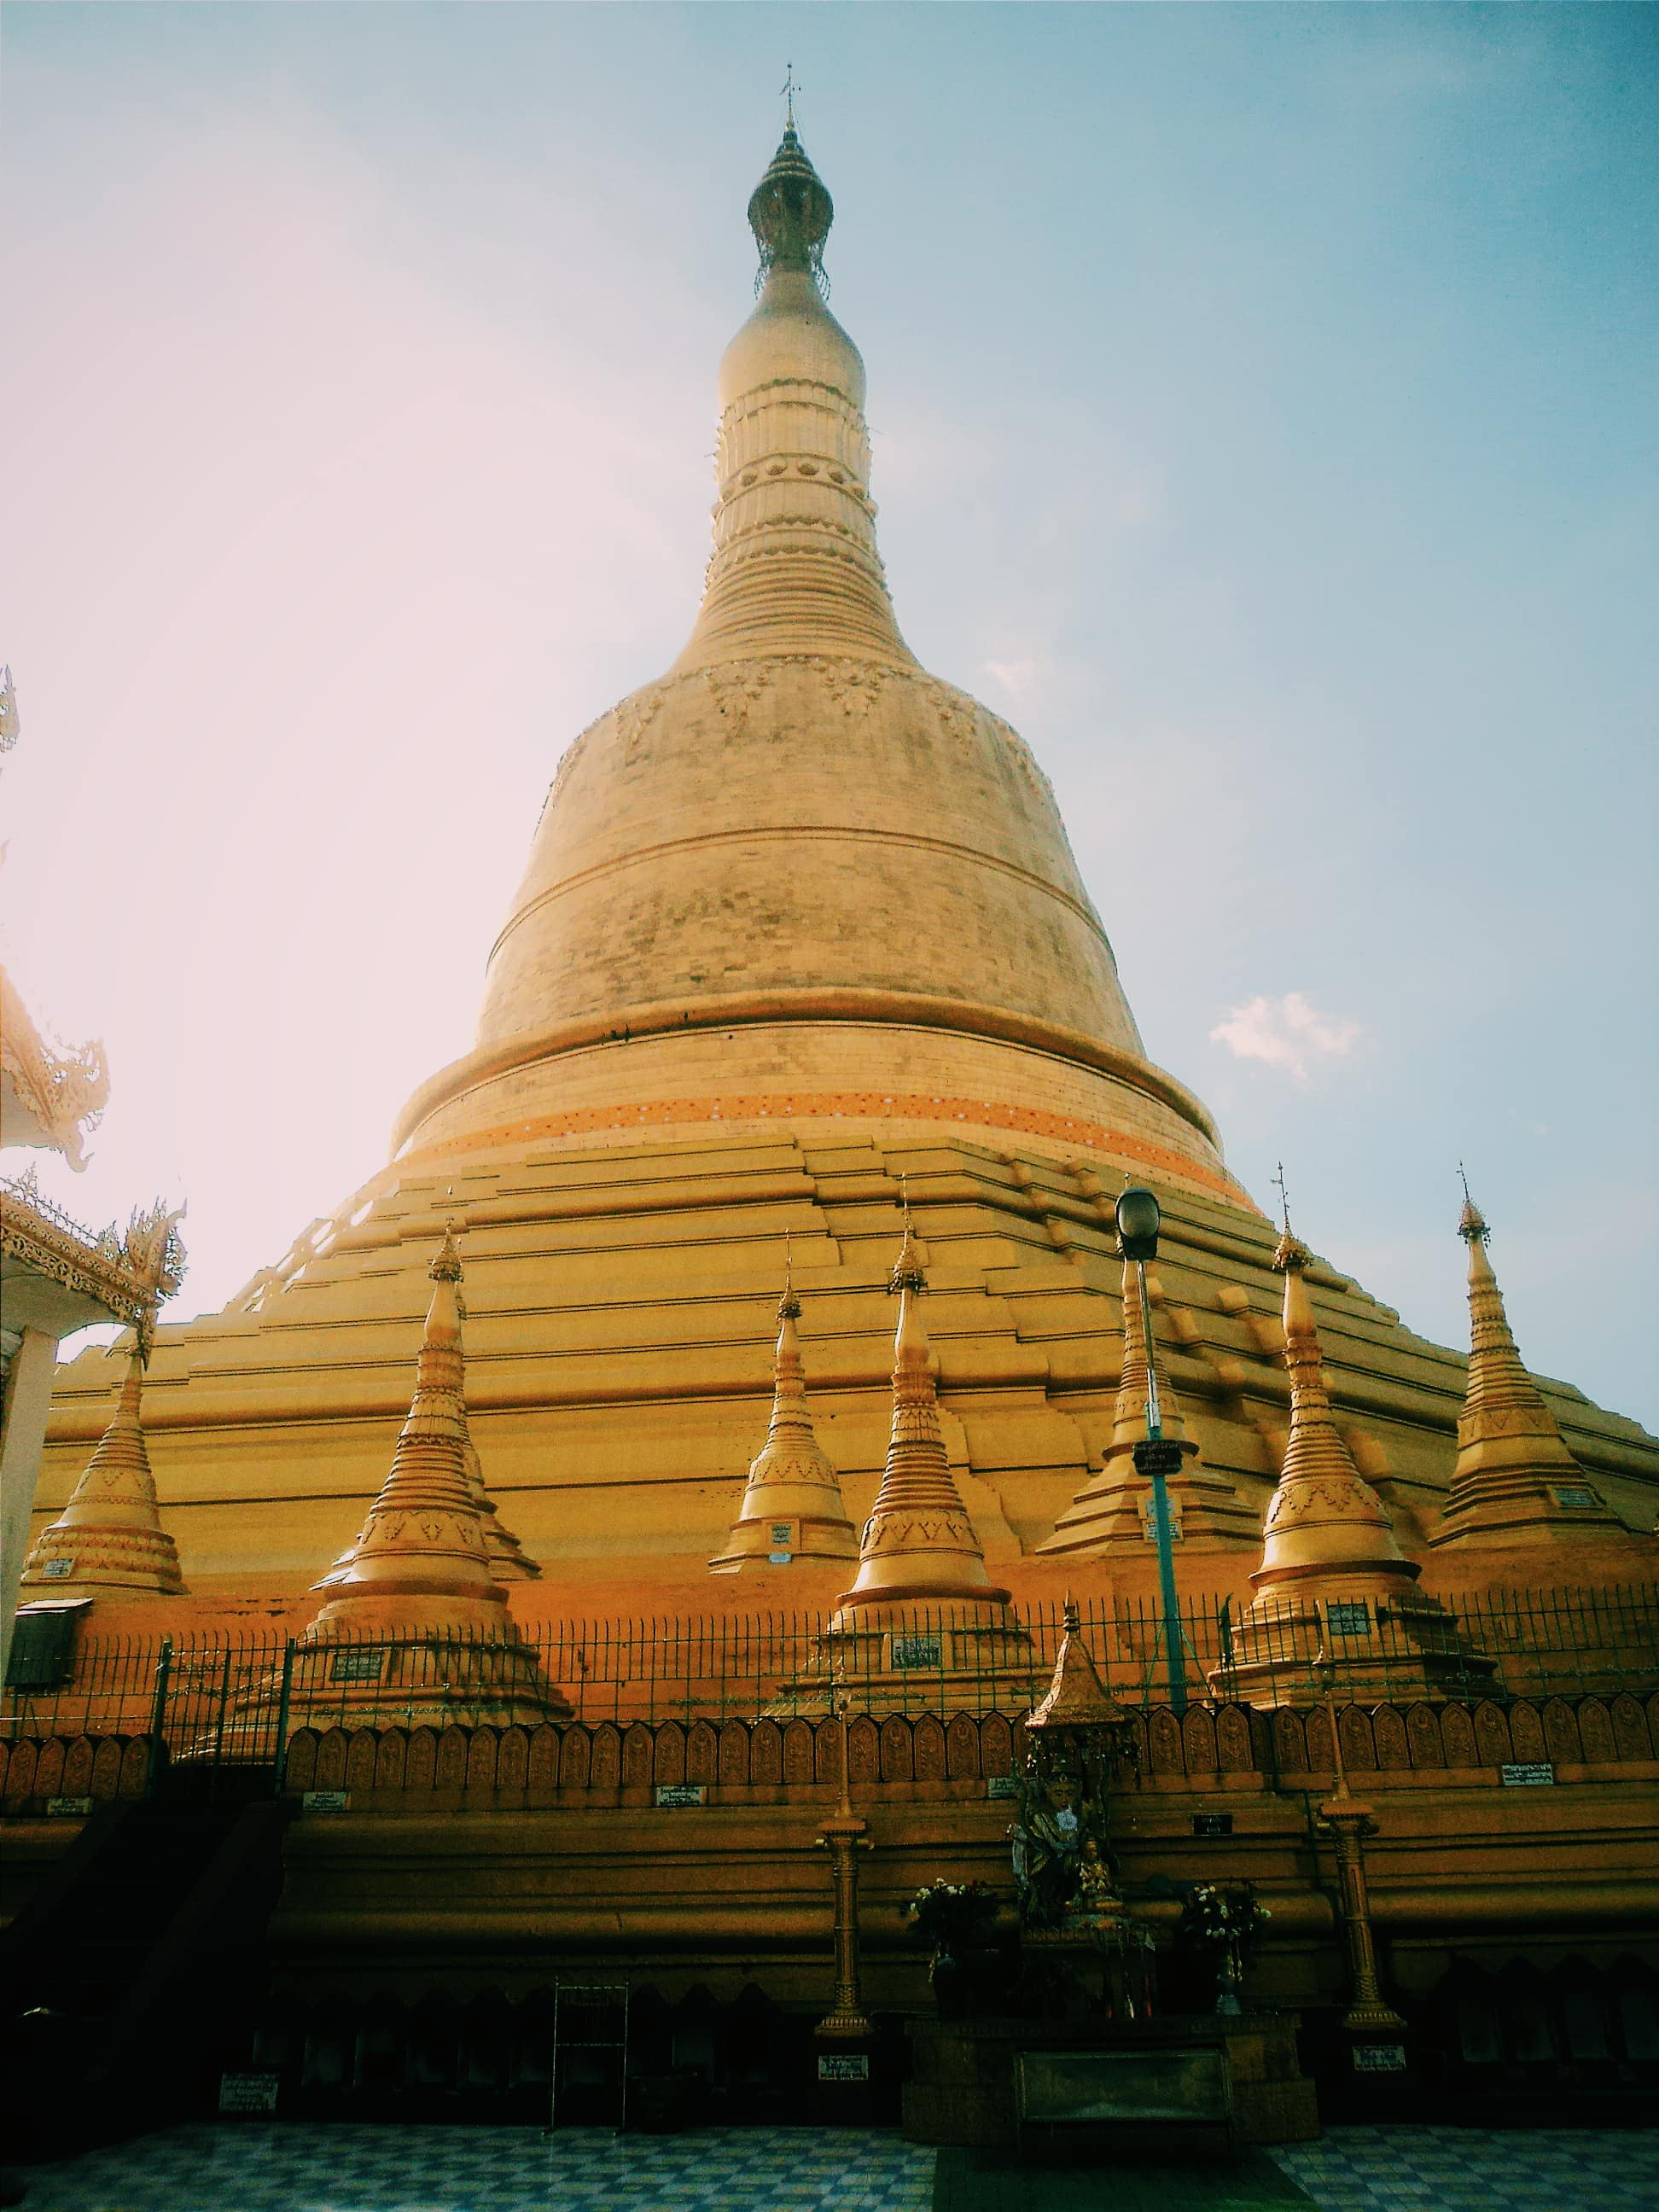 Pagoda. Travel Myanmar in a low budget.